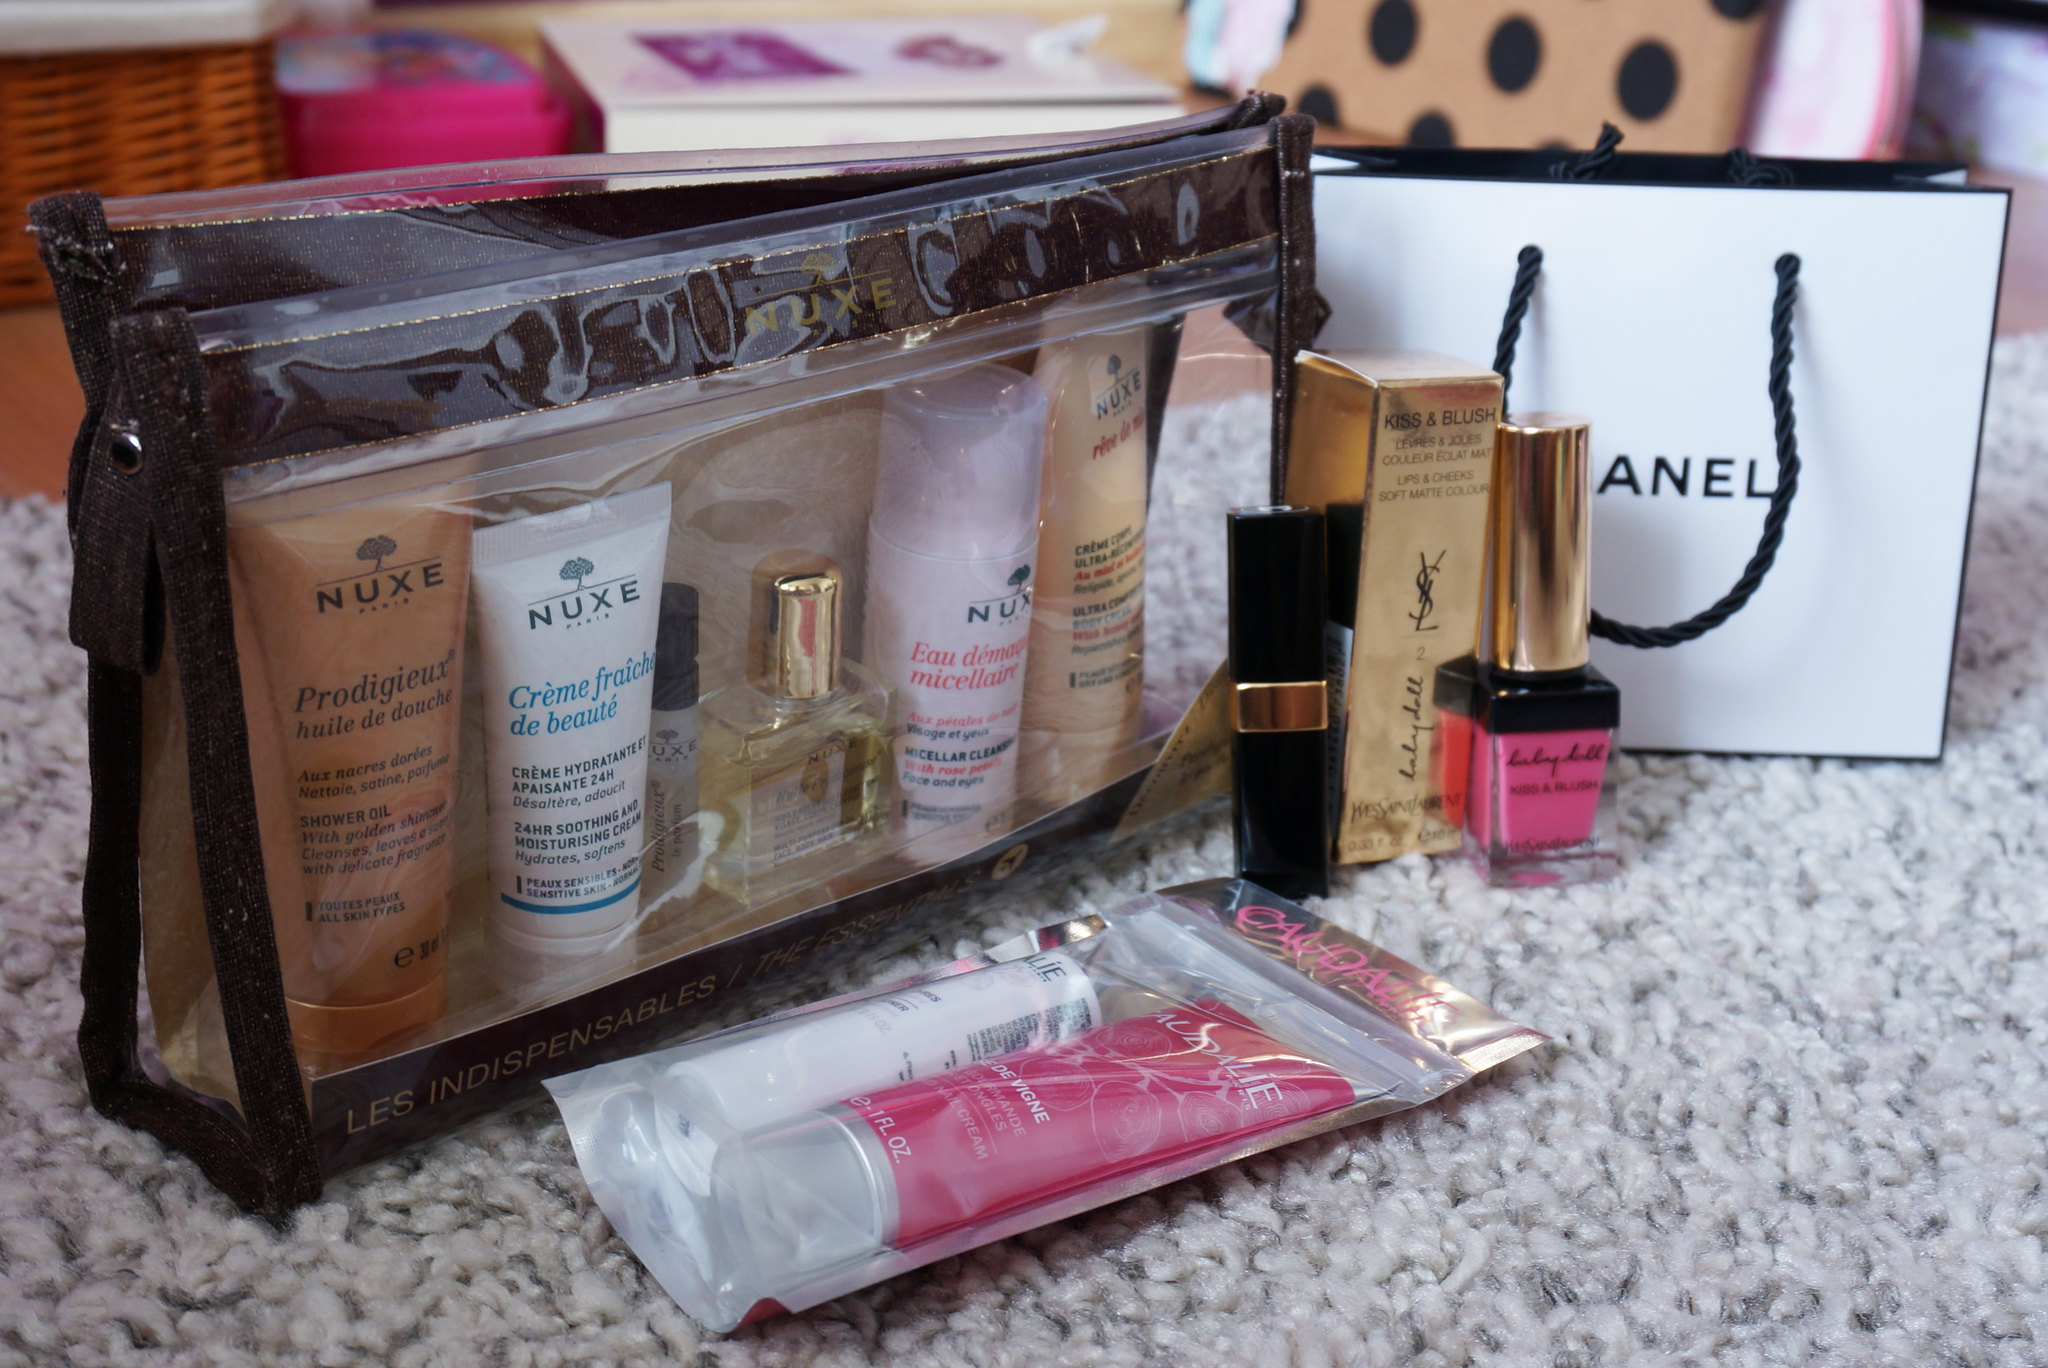 nuxe-travel-kit-caudalie-duo-rose-de-vigno-chanel-coco-rouge-shine-randezvous-ysl-kiss-and-blush